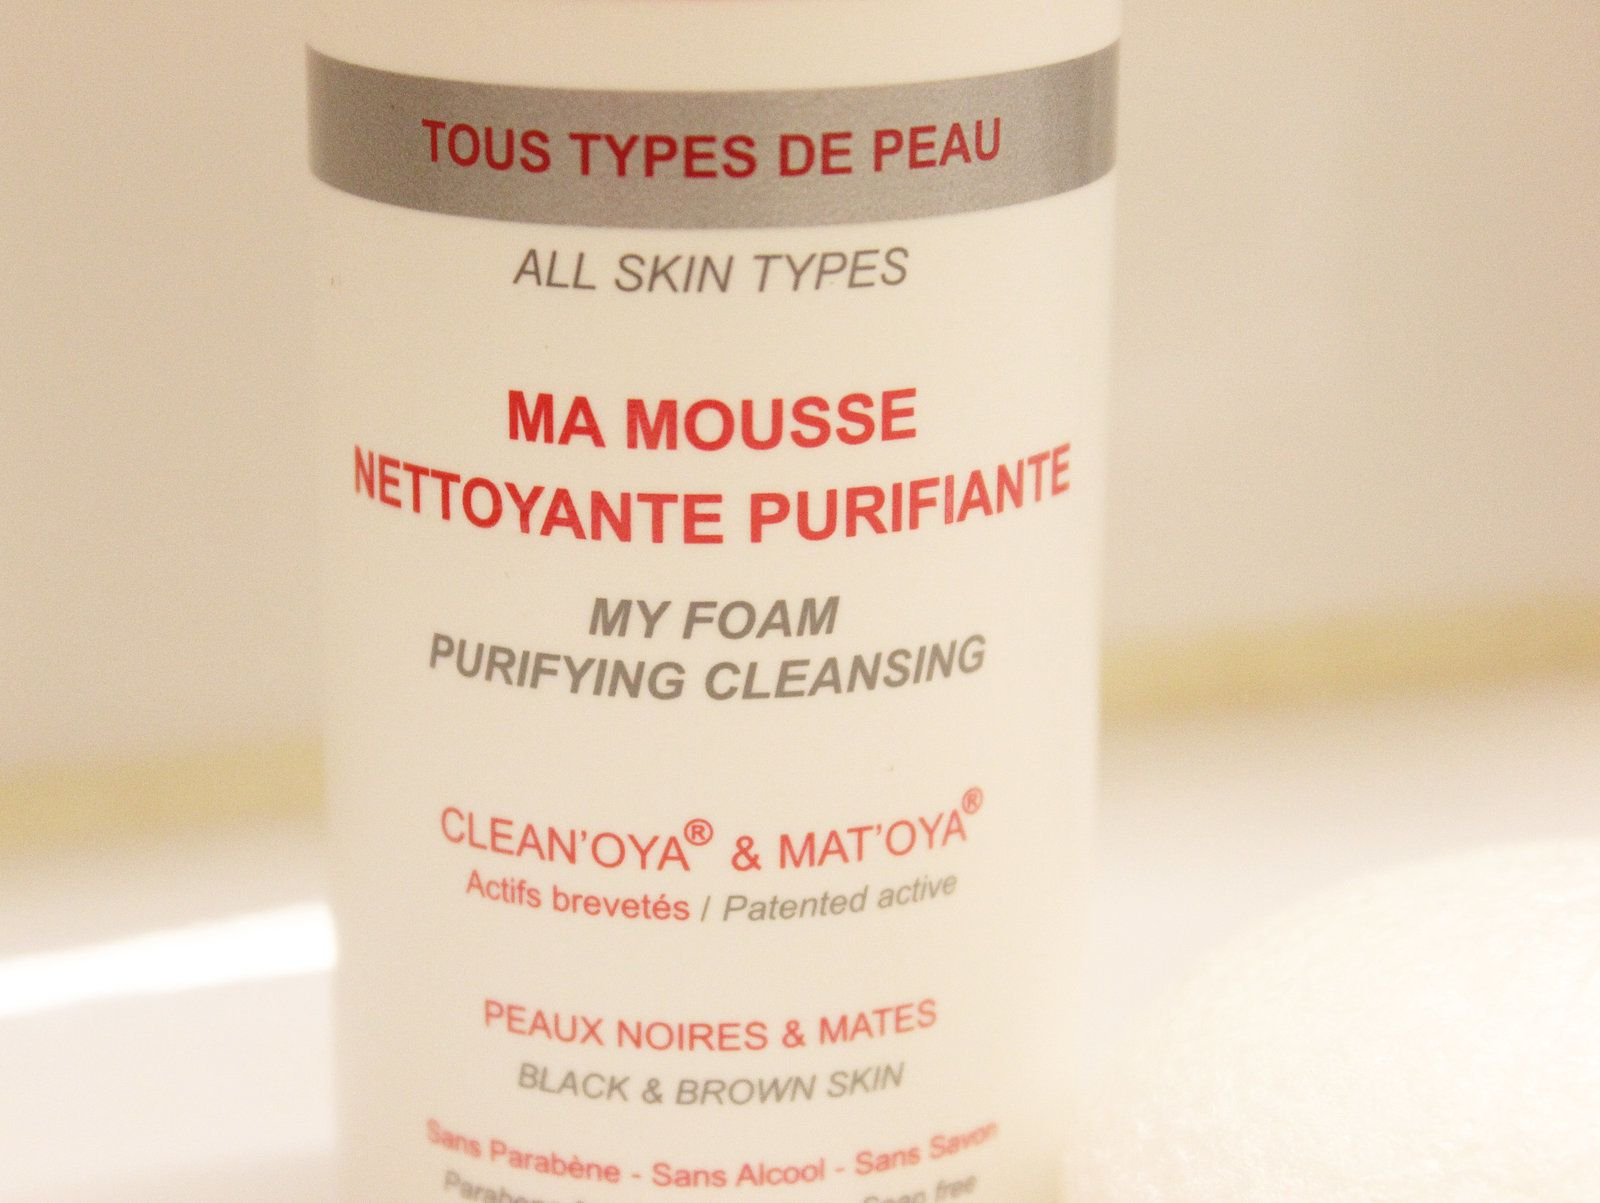 Ma mousse nettoyante purifiante In'Oya